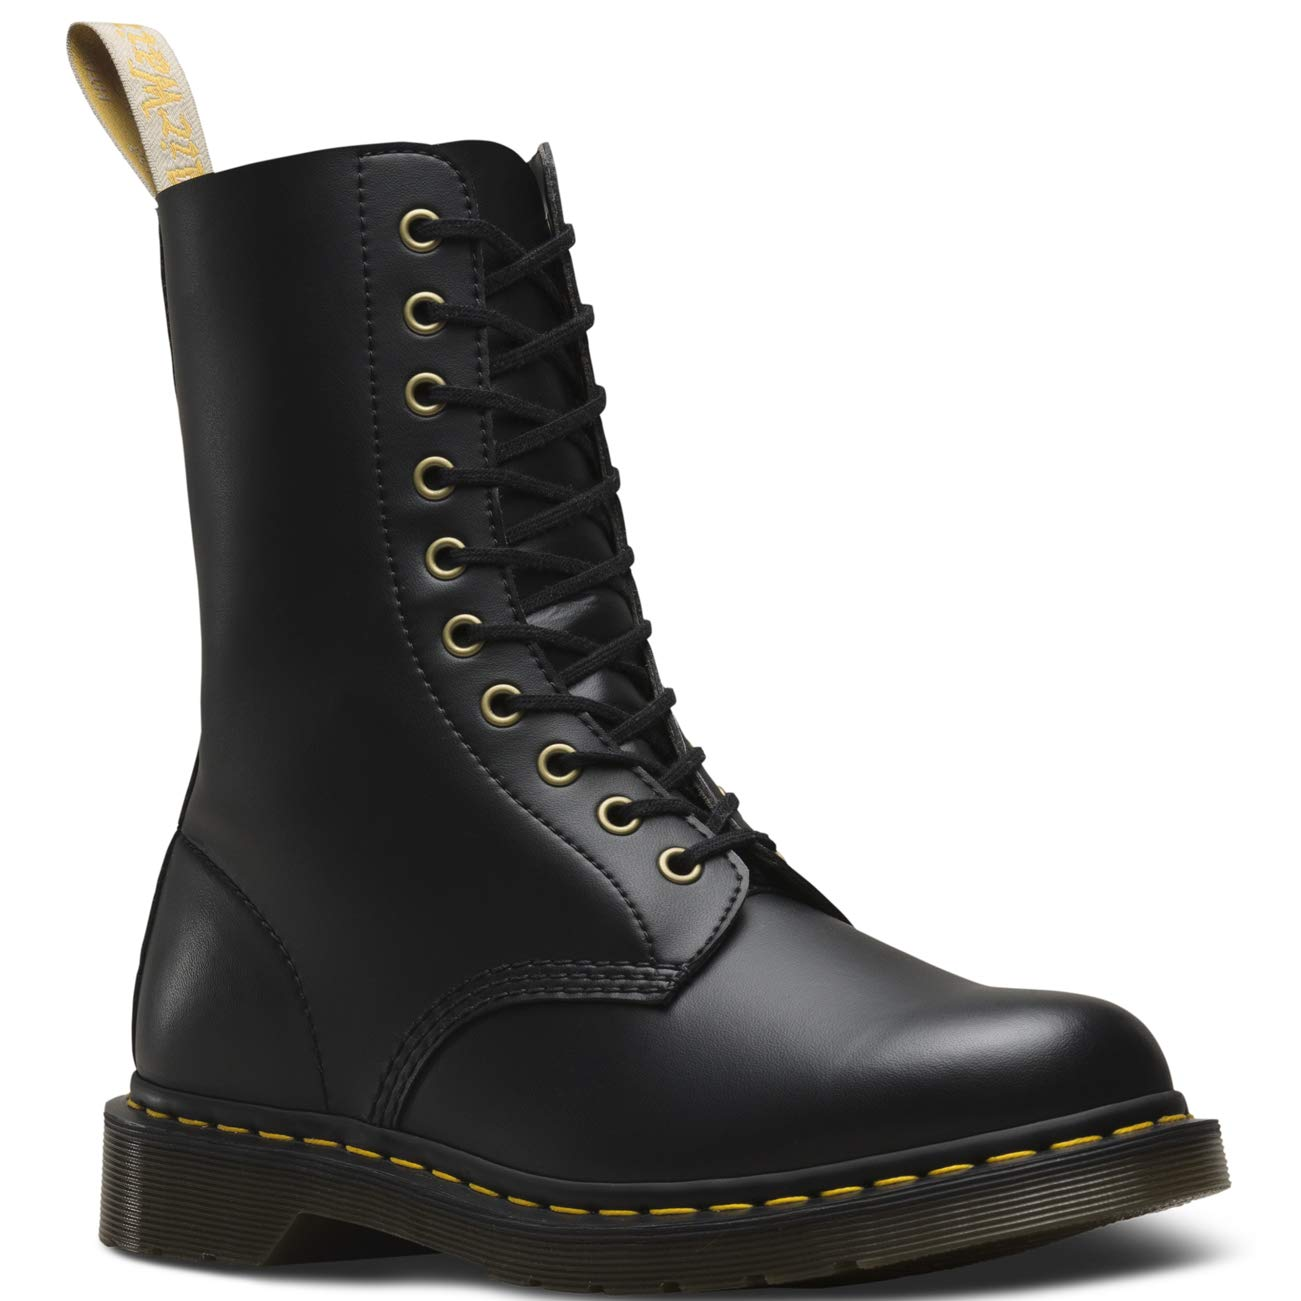 Generoso Assolutamente Vai su  Dr. Martens Women's 1490 Virginia Eye Leather Boot - Buy Online in El  Salvador. | dr. martens Products in El Salvador - See Prices, Reviews and  Free Delivery over US$70.00 | Desertcart